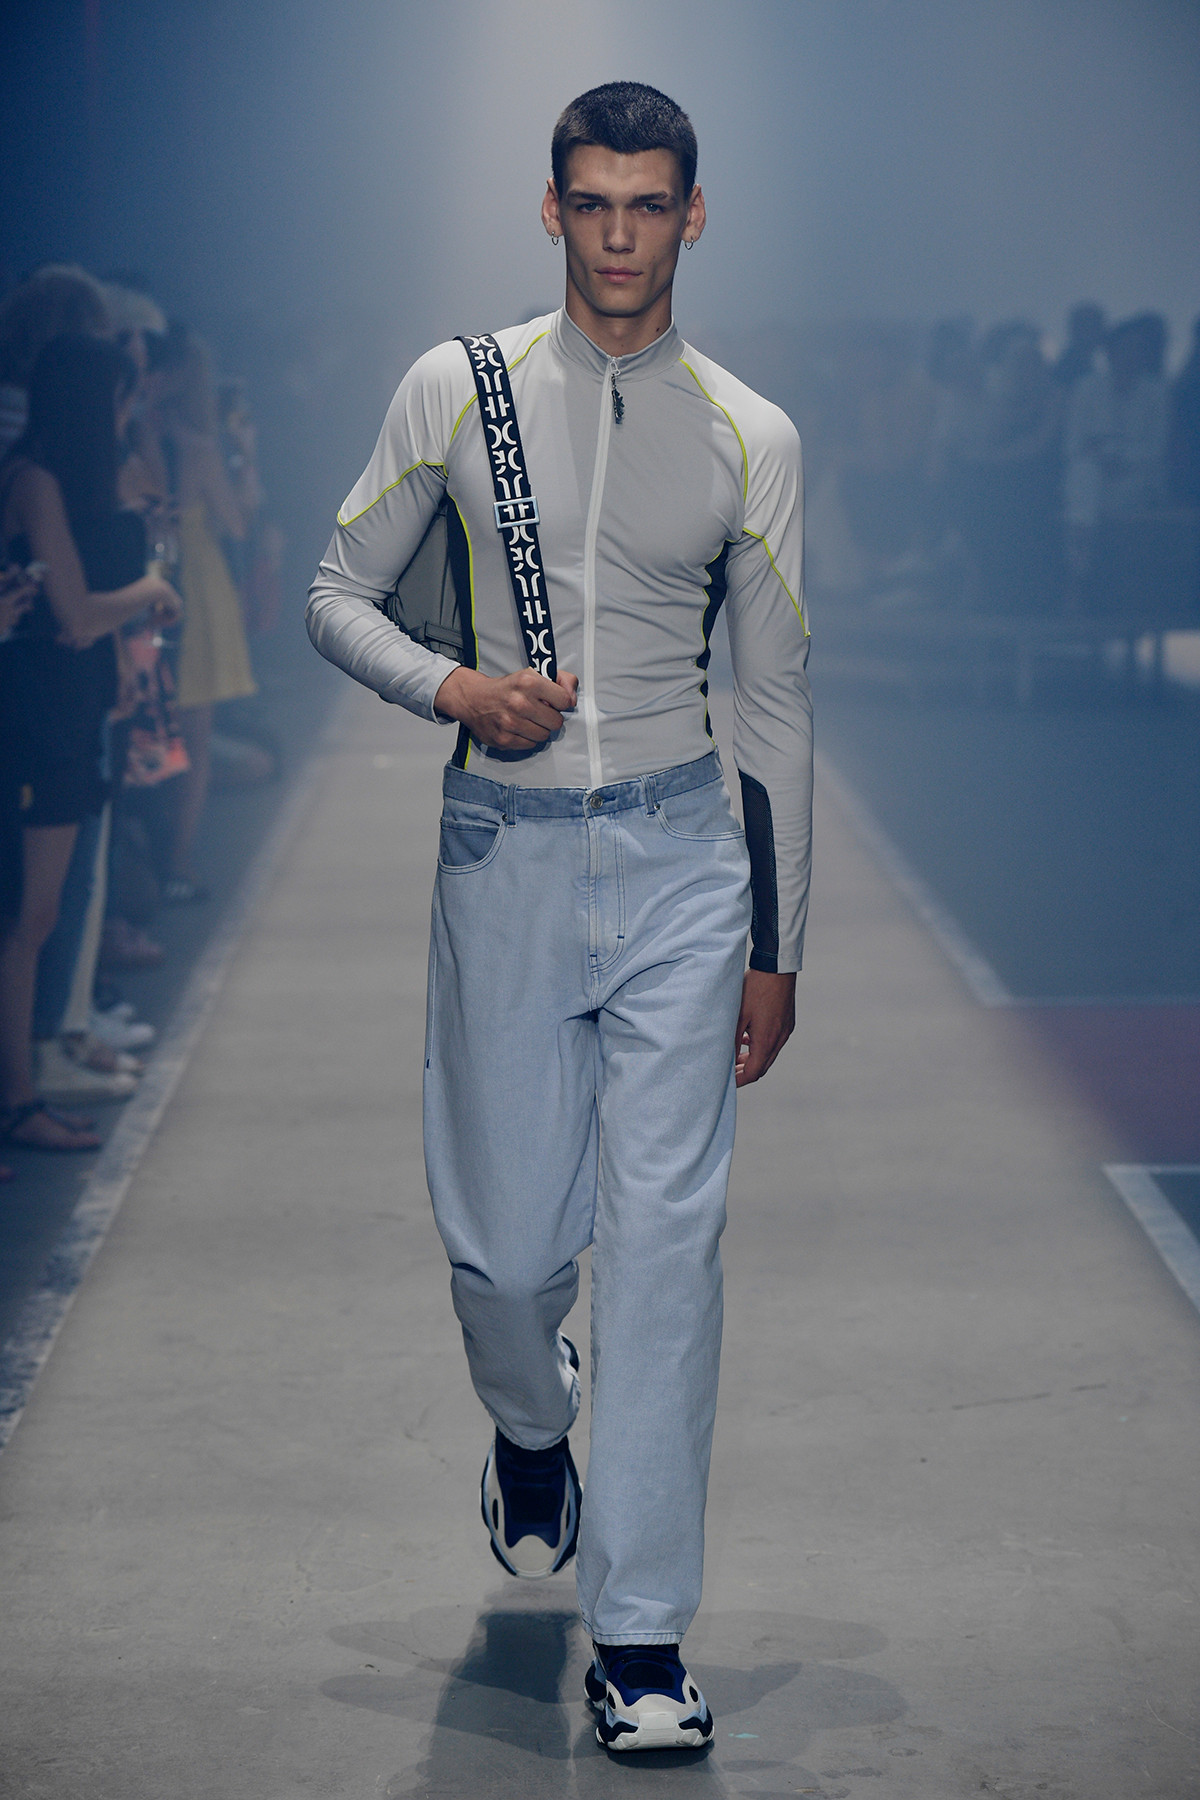 Hugo Boss SpringSummer 2019 Collection – New York Fashion Week recommendations